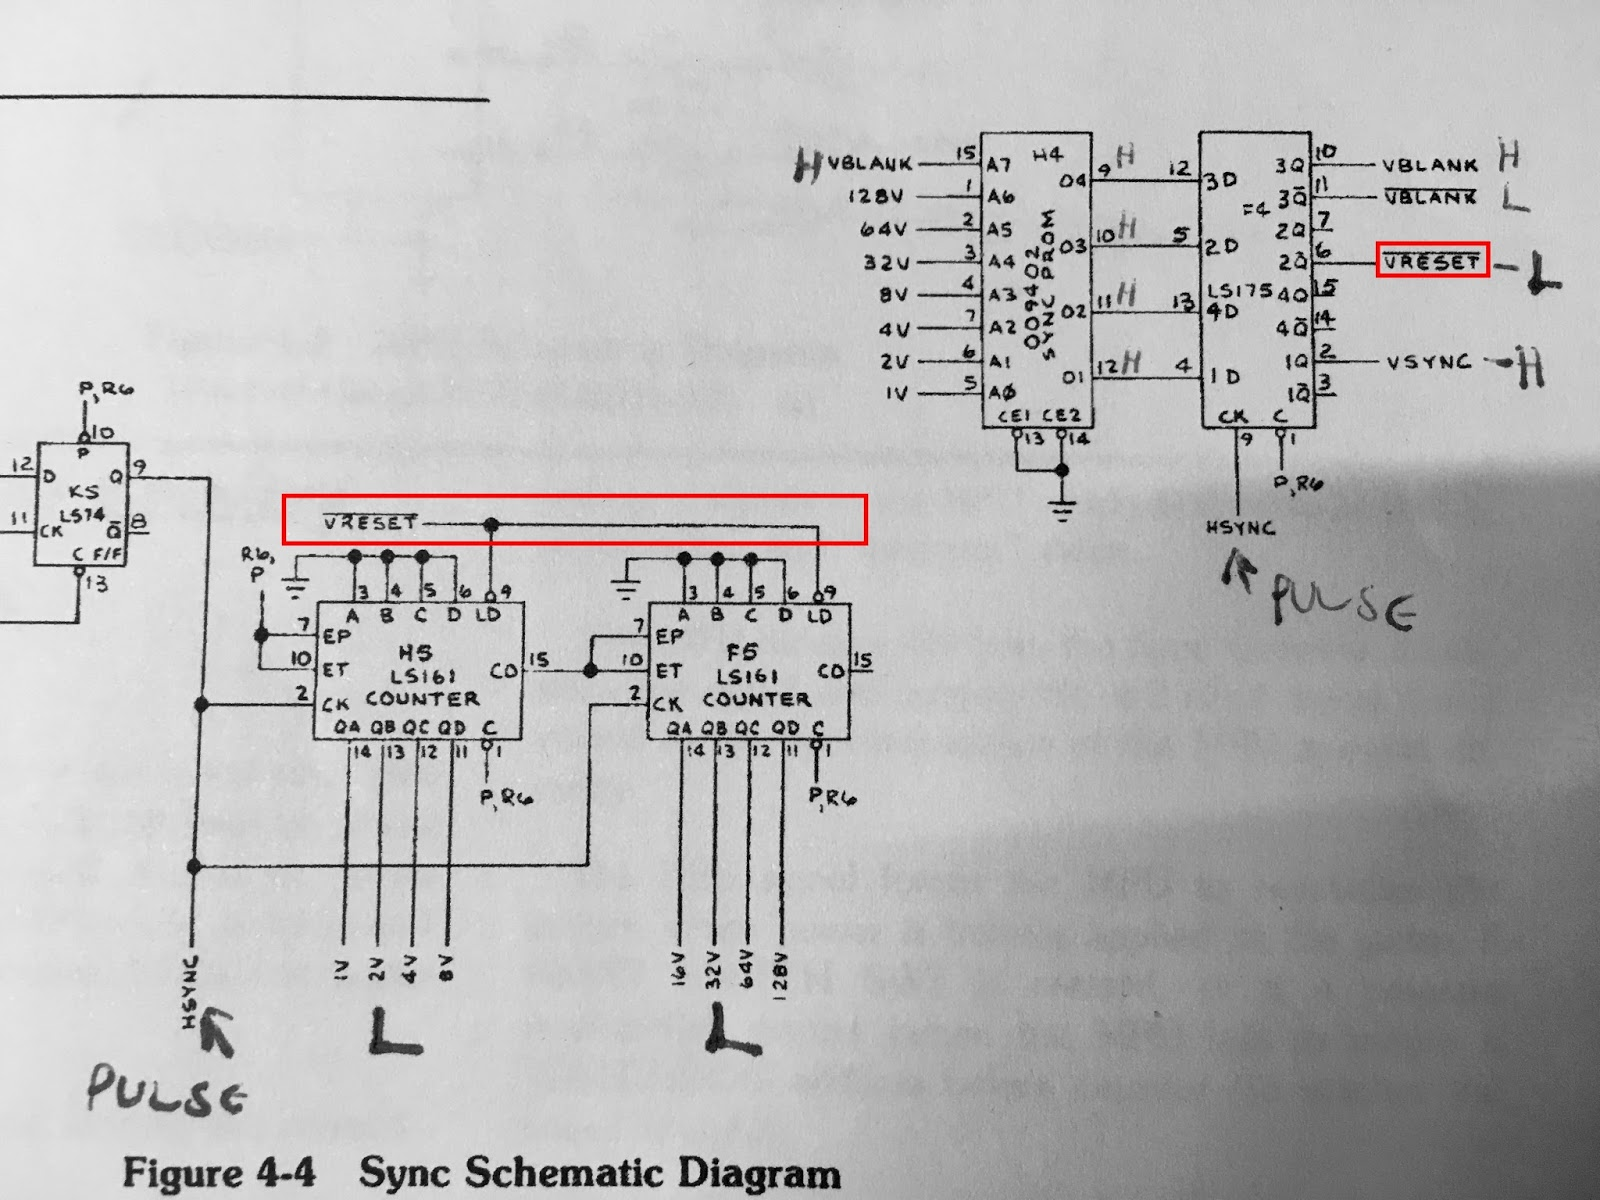 Atari Fire Truck Wiring Diagram Free Download Diagrams Pinball Jump N Video Pcb Repair As I Noted On My Printed Schematic All Of The Vertical Output Signal Were Low These Should Be Seem To